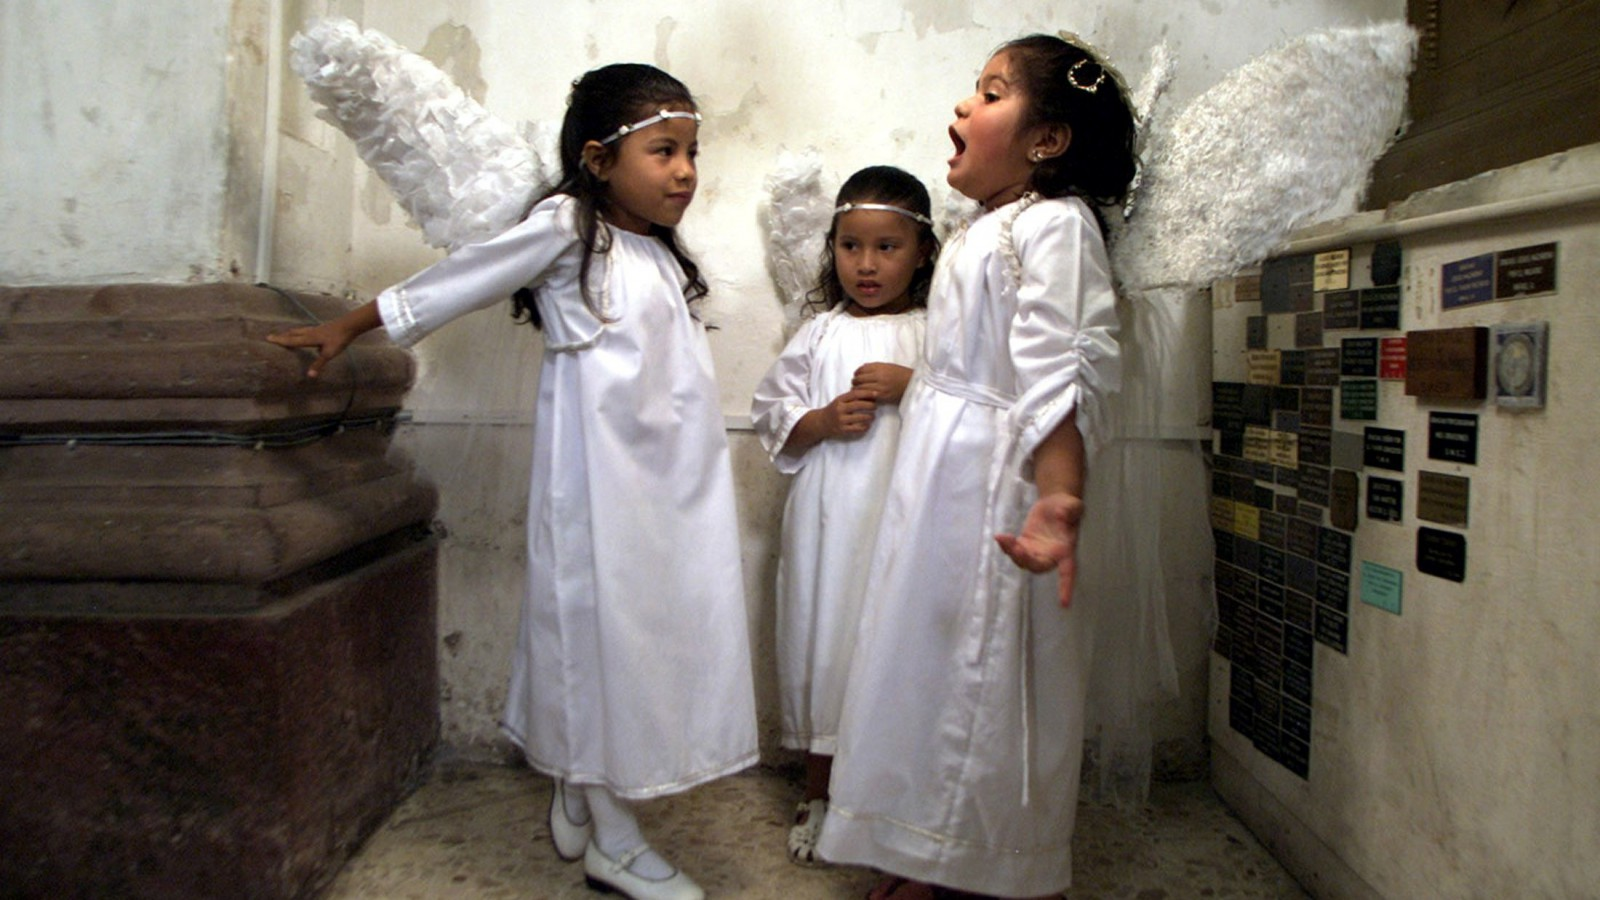 Children dressed as angels chat before participating in a procession in honor of St. Michael the Archangel September 29, 2003 in Tegucigalpa, Honduras. Today also marks Tegucigala's 425 anniversary. REUTERS/Daniel LeClair Pictures of the Year 2003  DNL - RTR3WQG